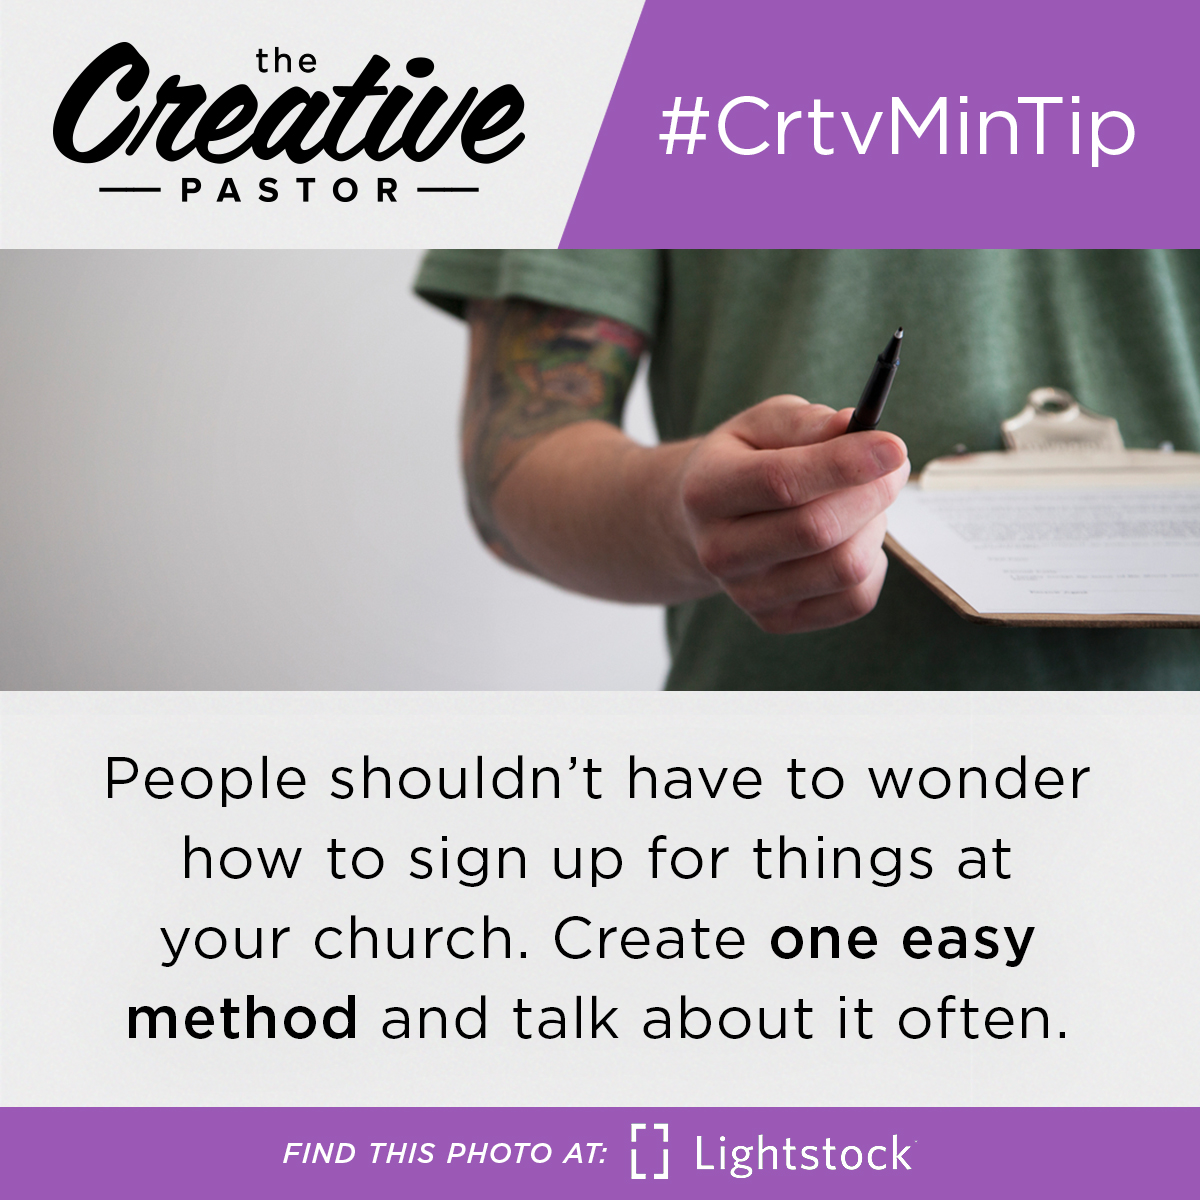 #CrtvMinTip: People shouldn't have to wonder how to sign up for things at your church. Create one easy method and talk about it often.